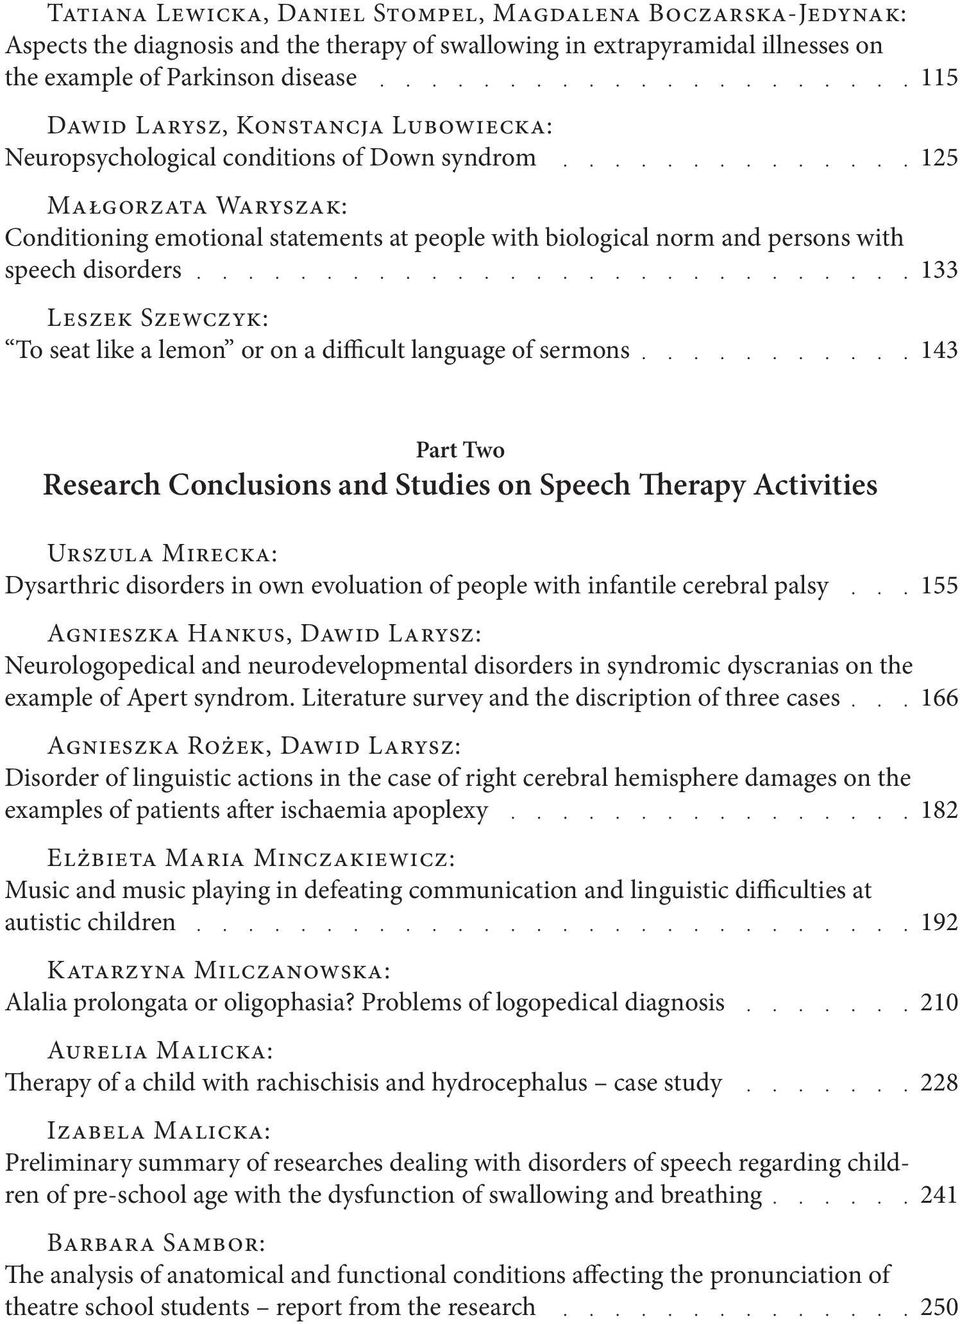 Szewczyk: To seat like a lemon or on a difficult language of sermons 115 125 133 143 Part Two Research Conclusions and Studies on Speech Therapy Activities Urszula Mirecka: Dysarthric disorders in